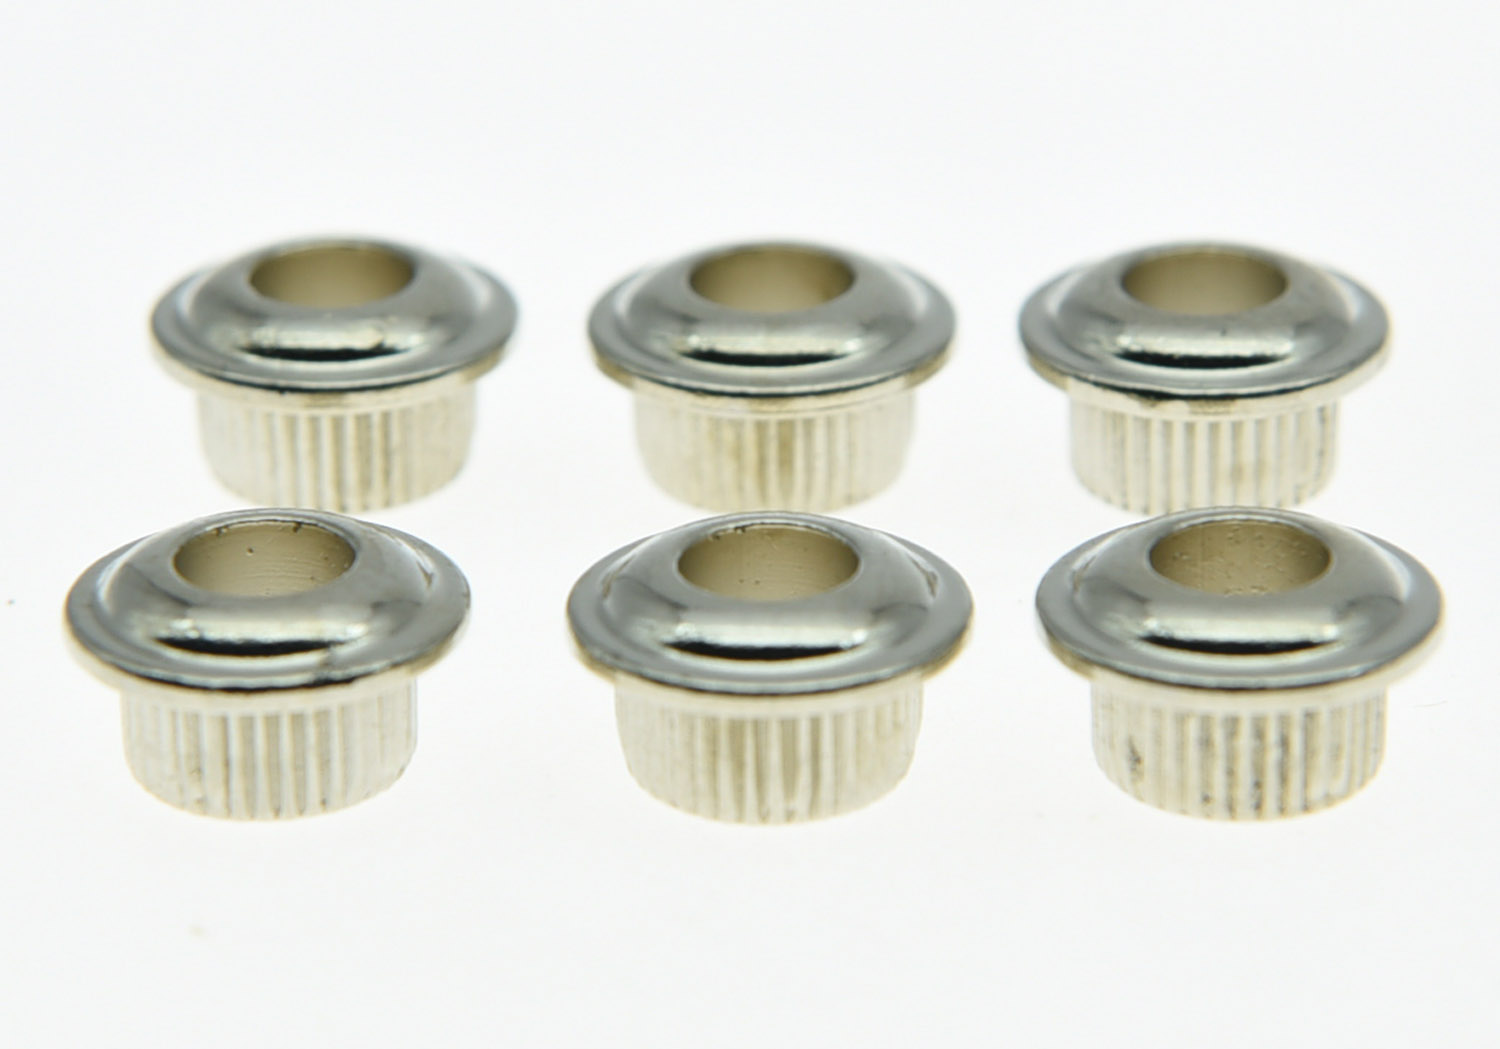 Nickel 10mm Metall Vintage Guitar Tuner Umwandlung Bushings Adapter Ferrules